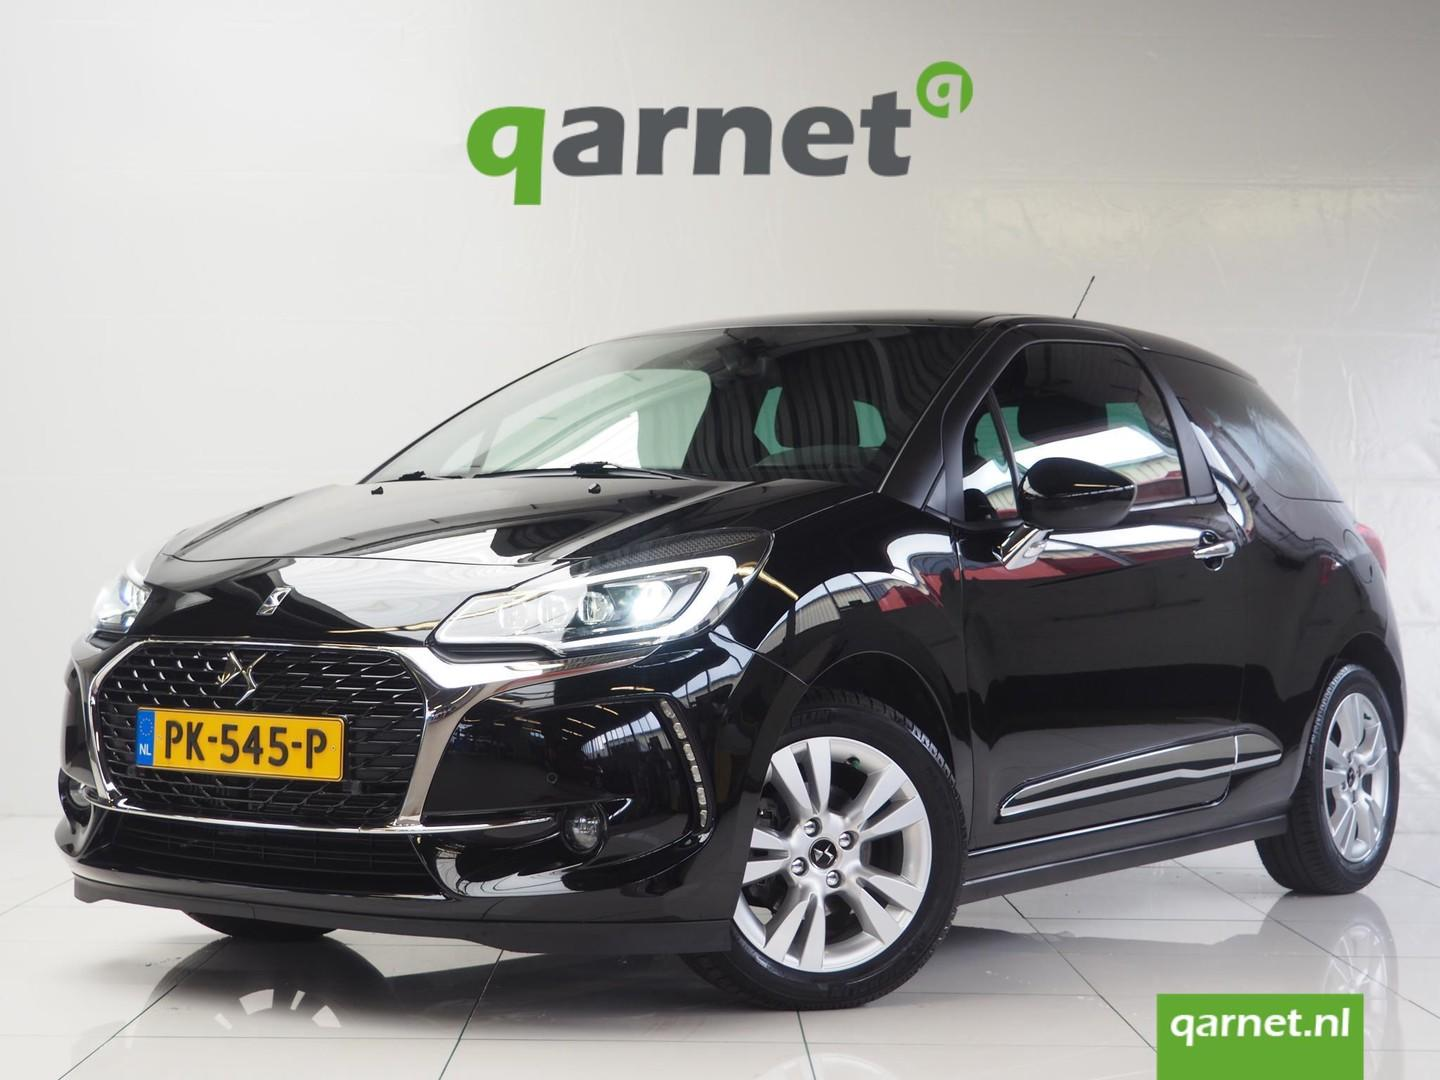 Citroën Ds3 1.2 puretech so chic 110 pk